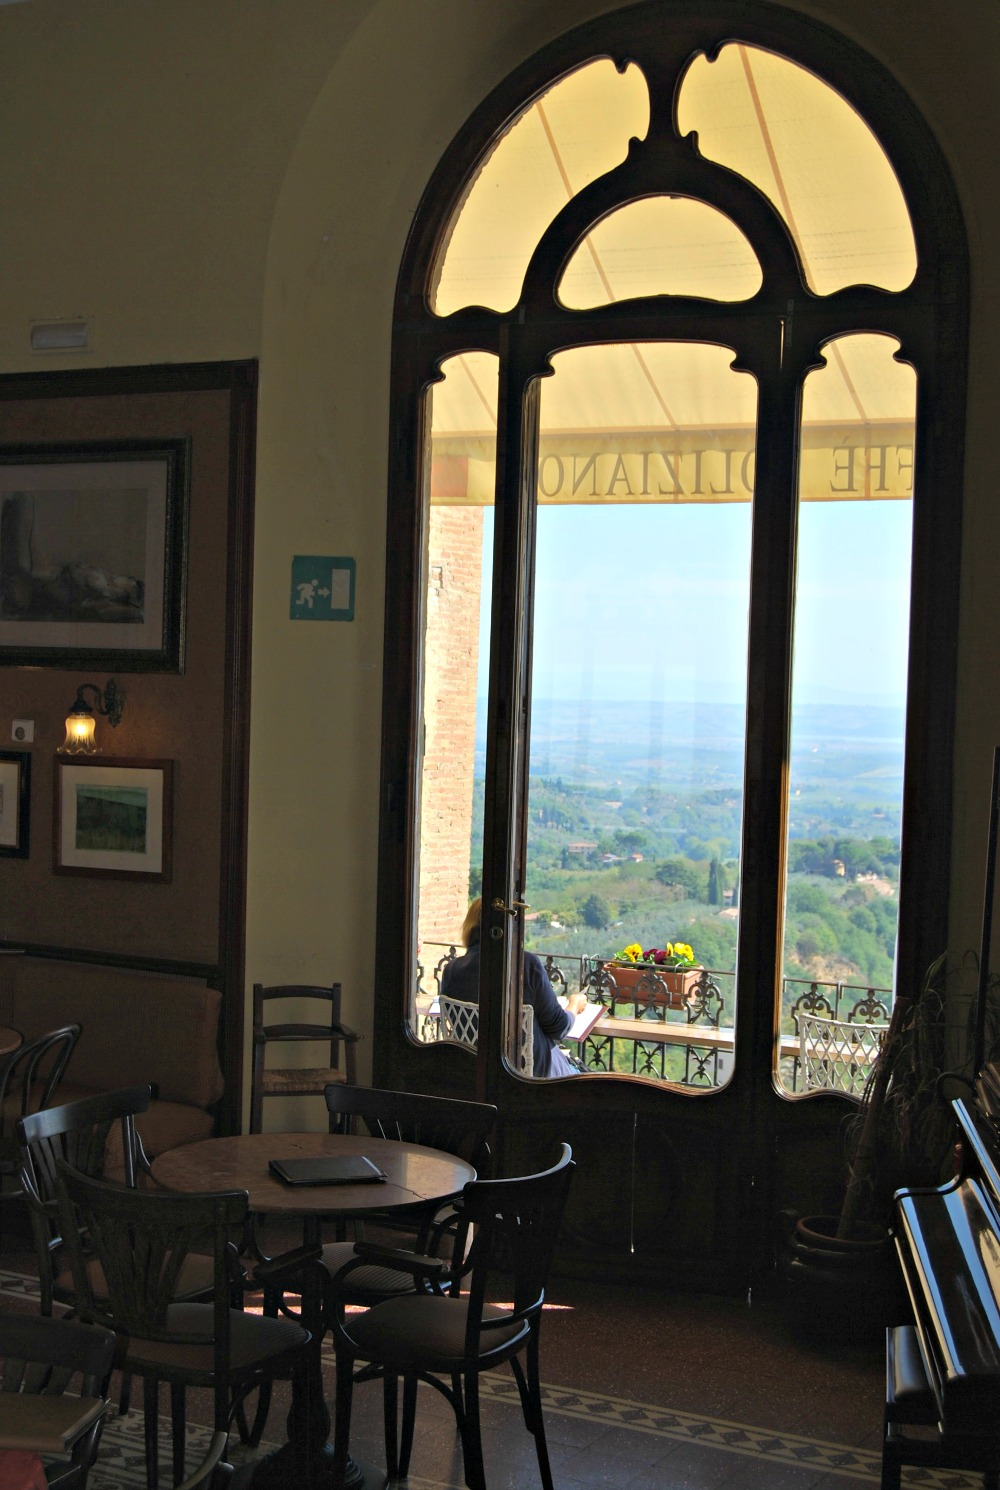 - Caffe Poliziano dining room looking out to the balcony and countryside.